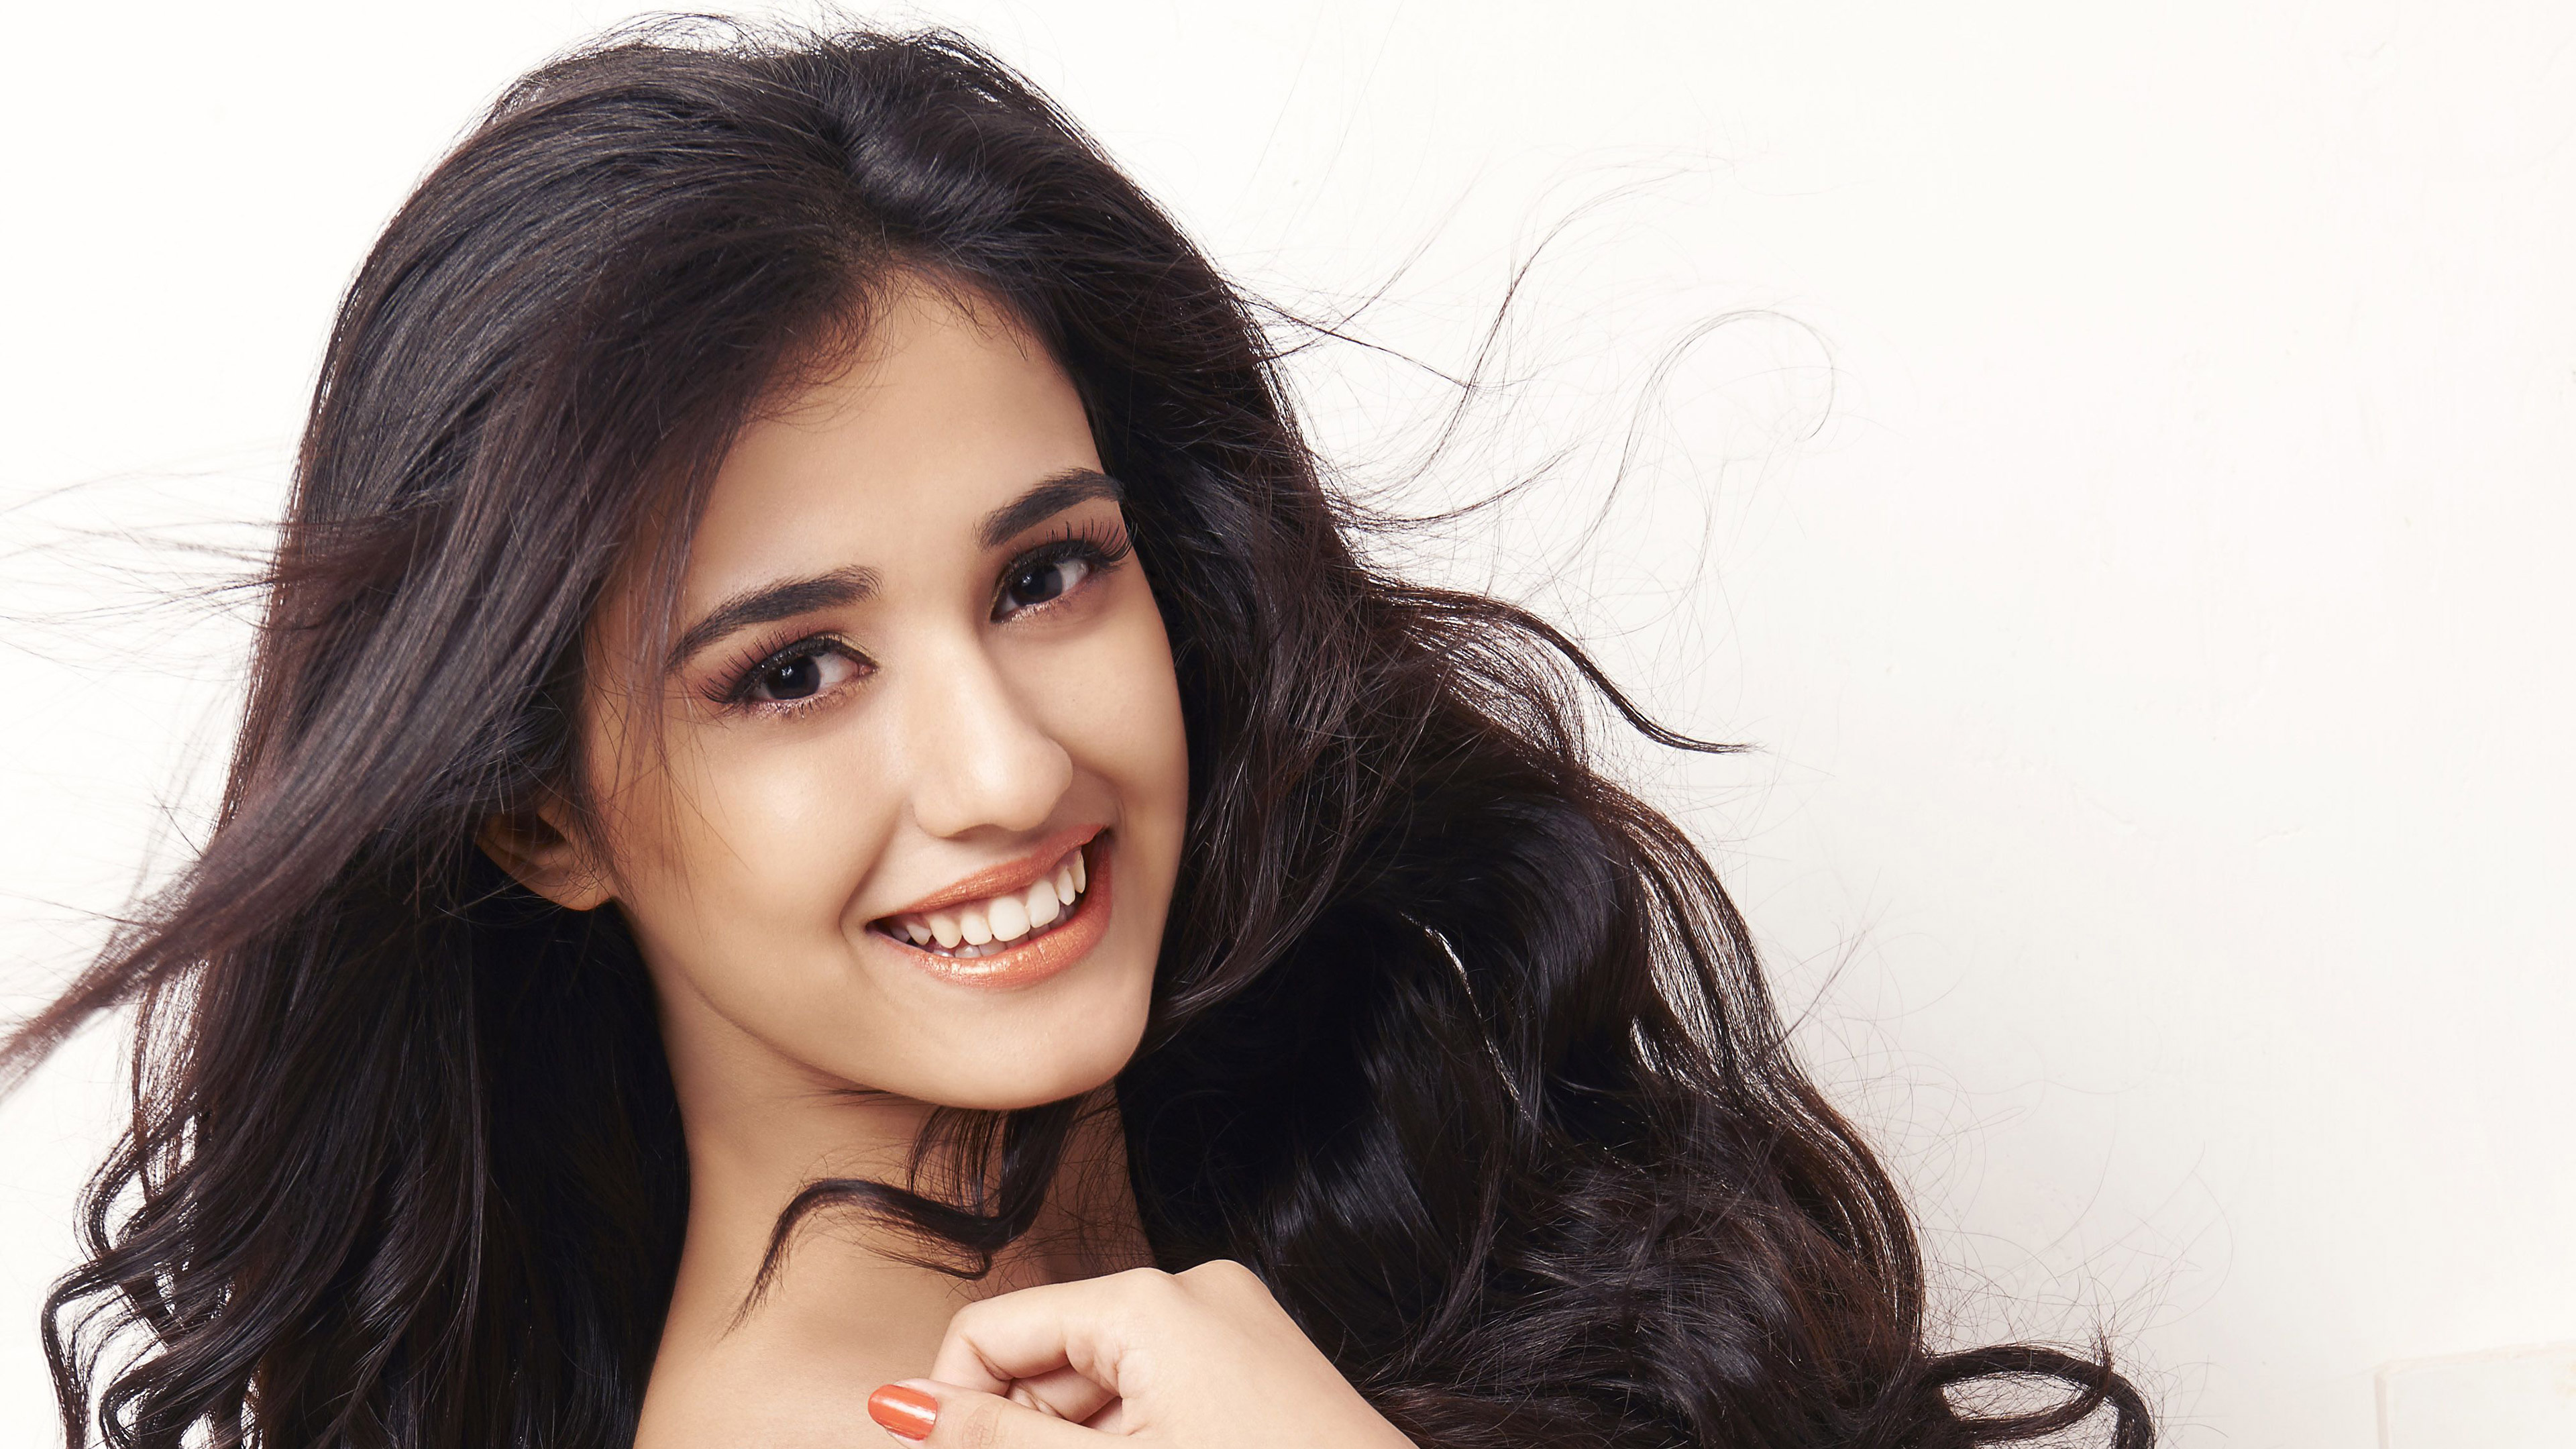 disha patani wallpaper 4k background